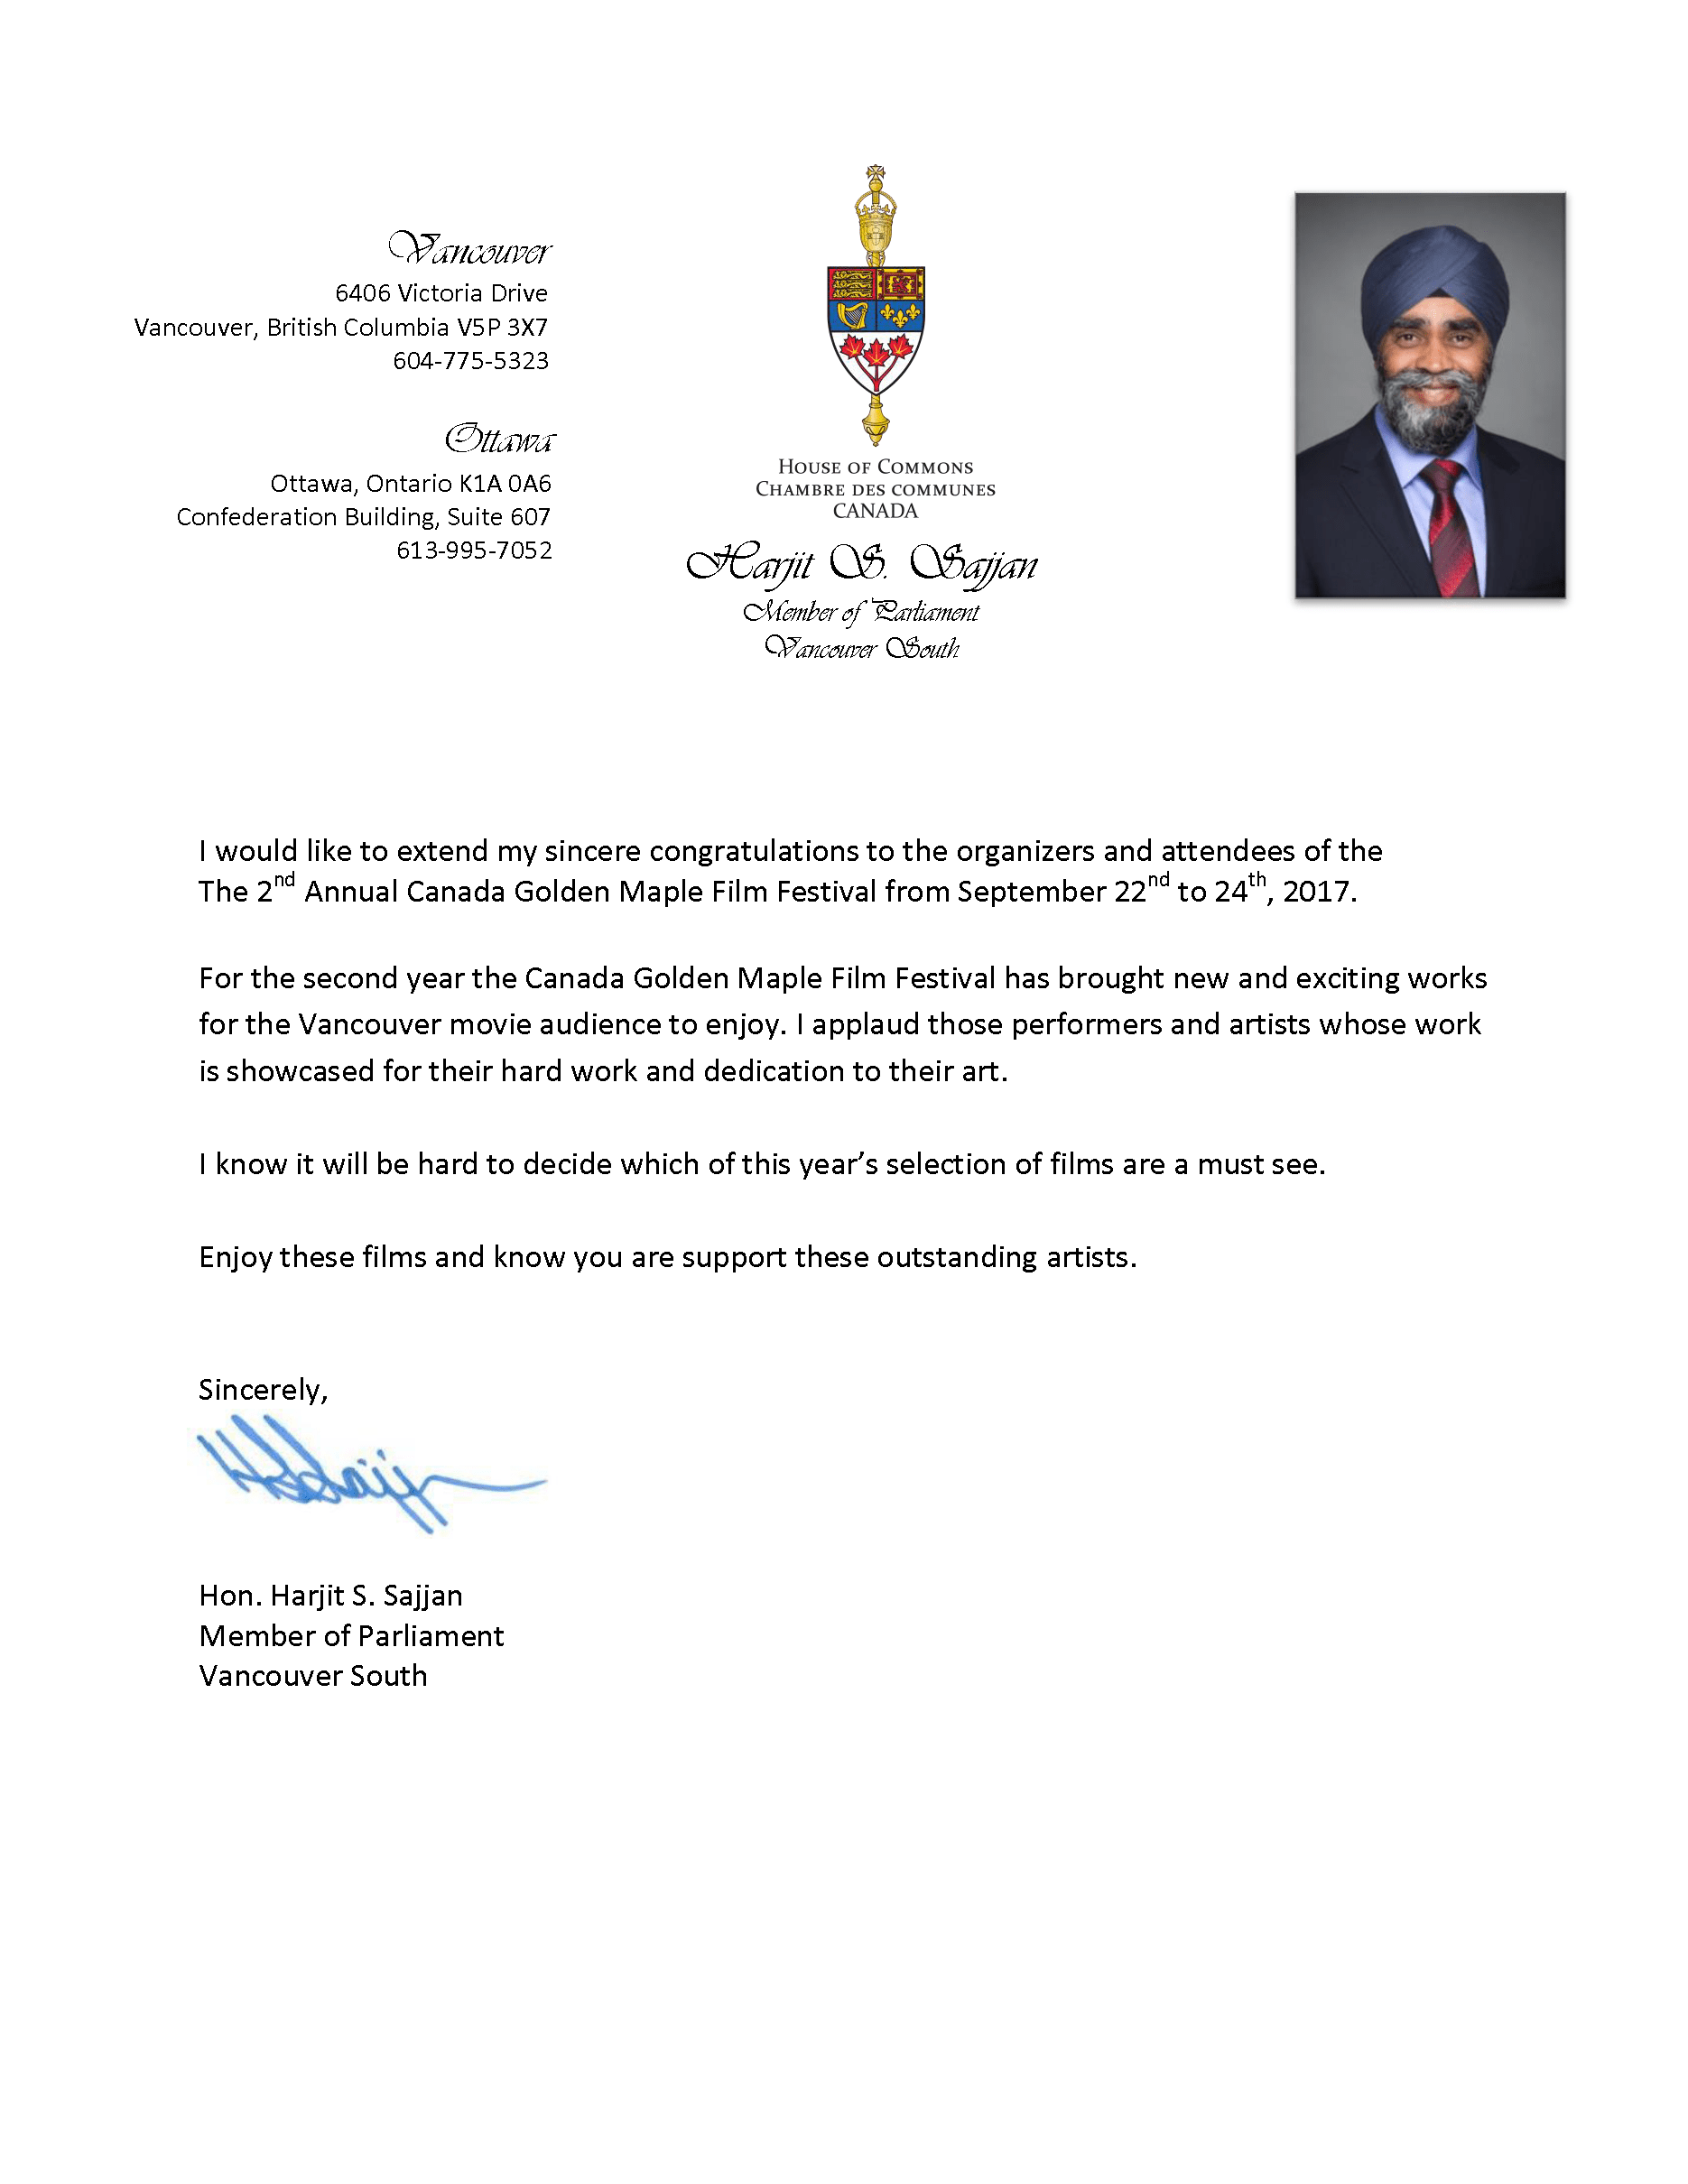 Congratulatory Letter from Harjit S. Sajjan, Canadian Minister of Defence